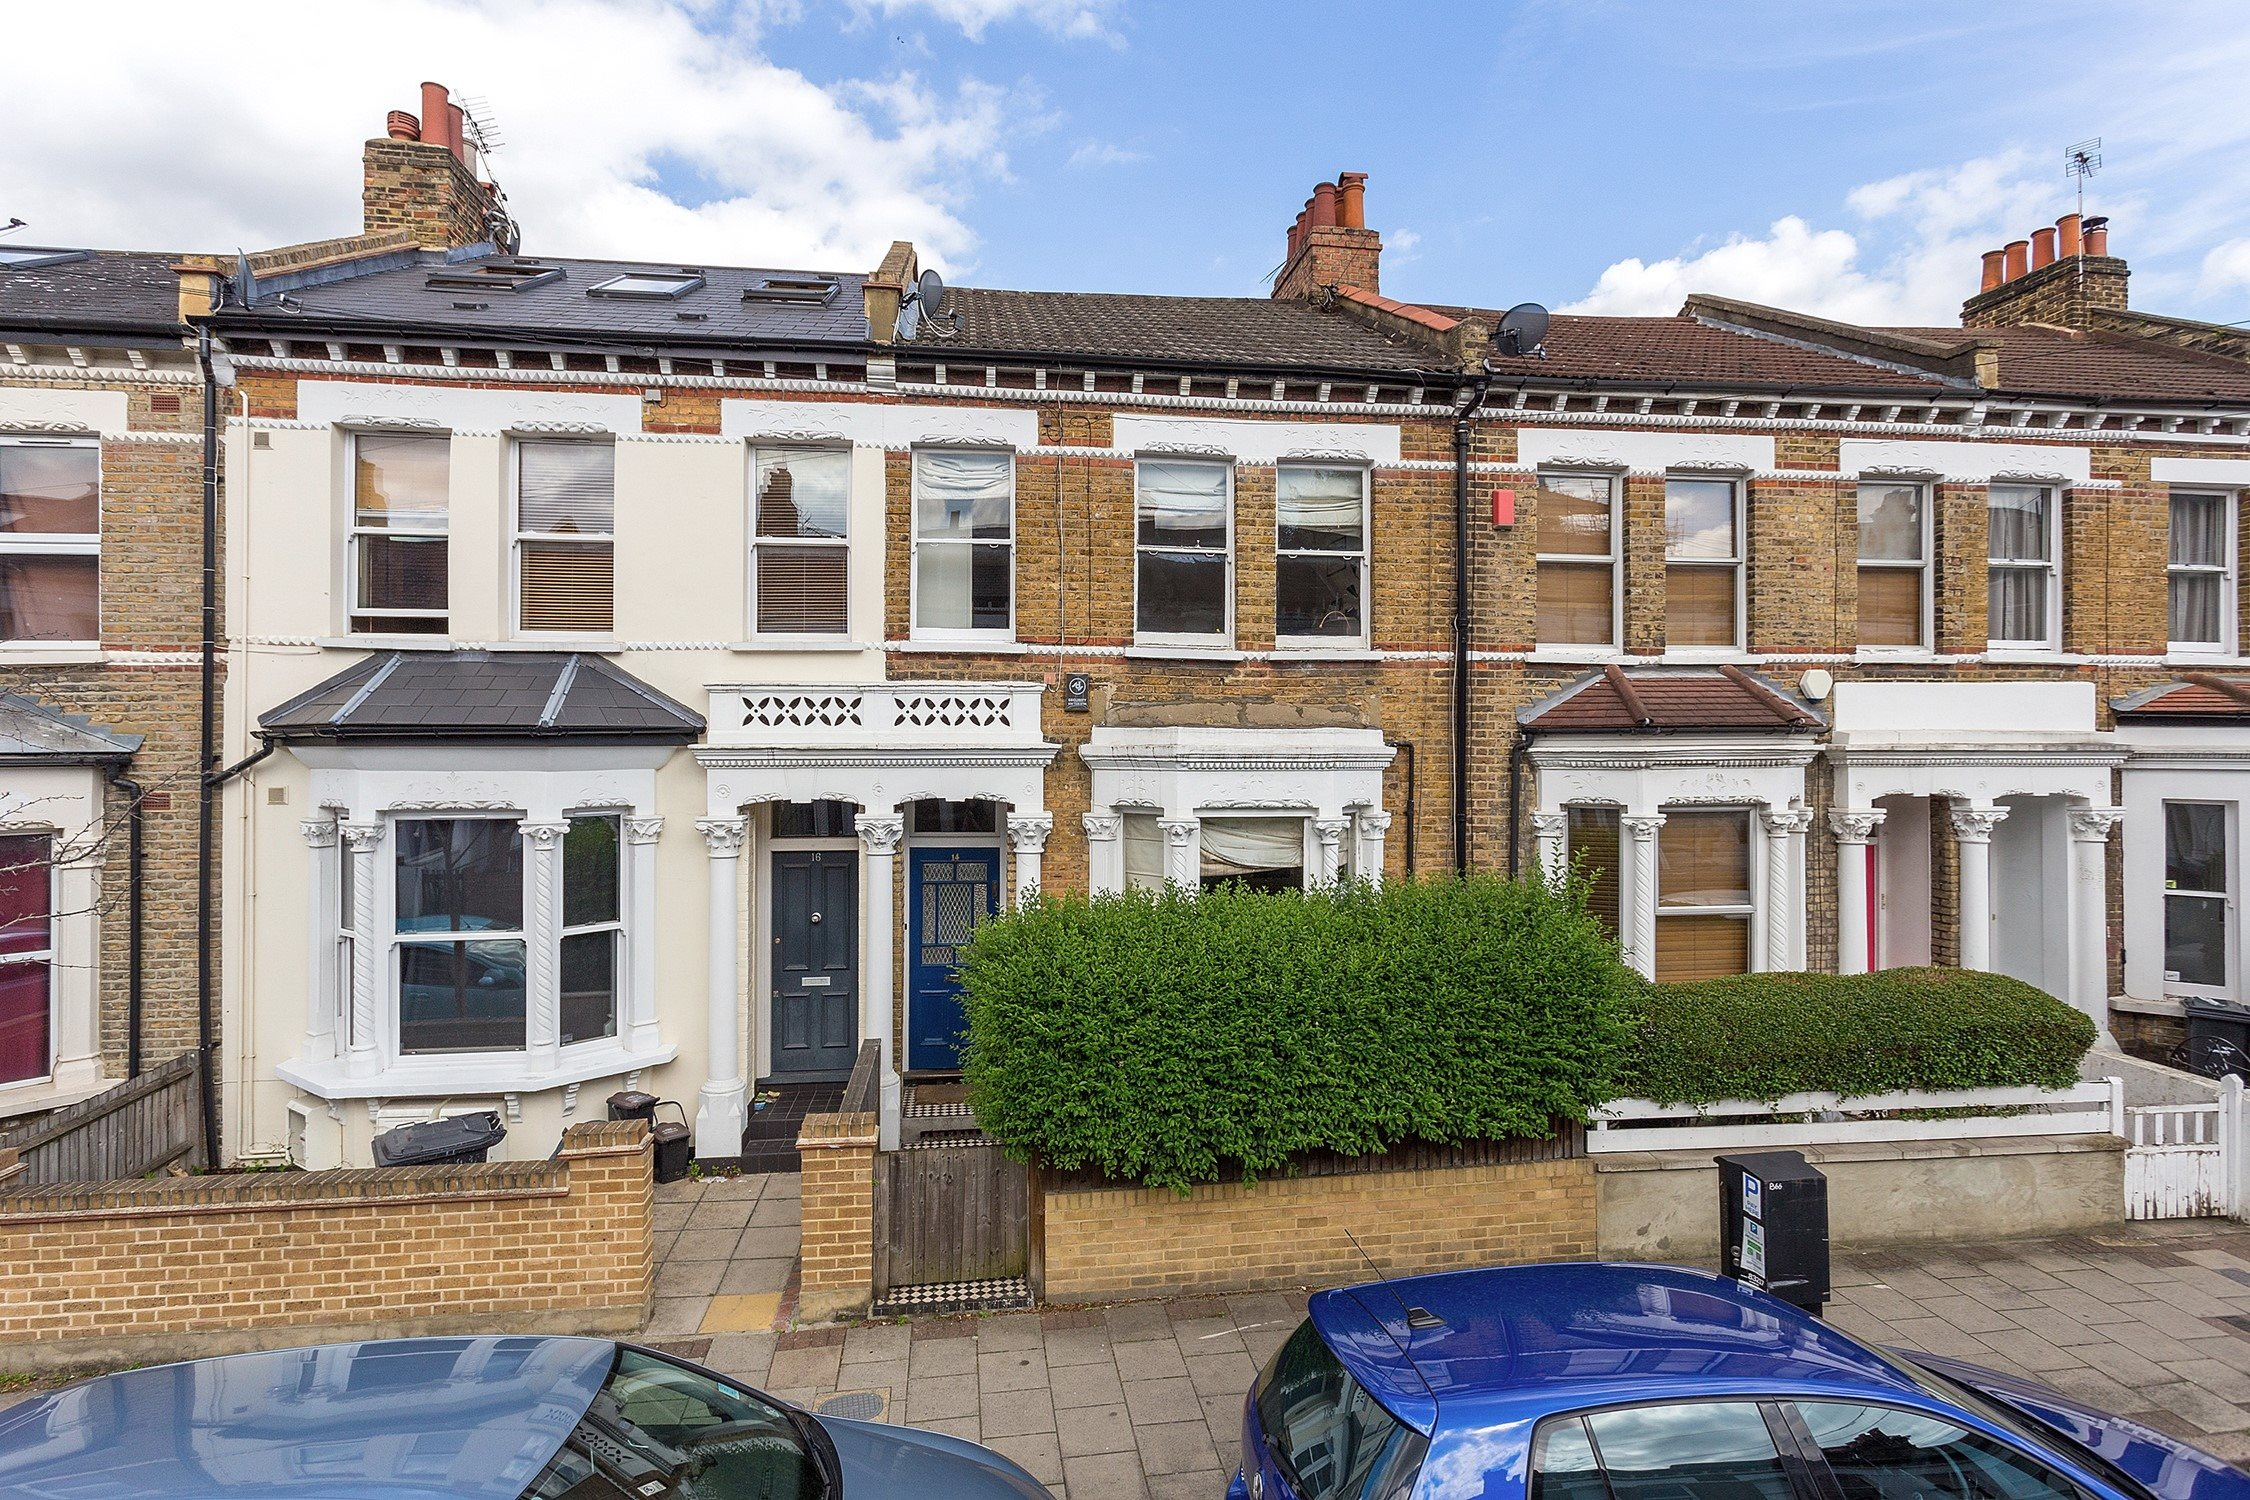 Portico - 4 Bedroom House for sale in Clapham North: Solon ...